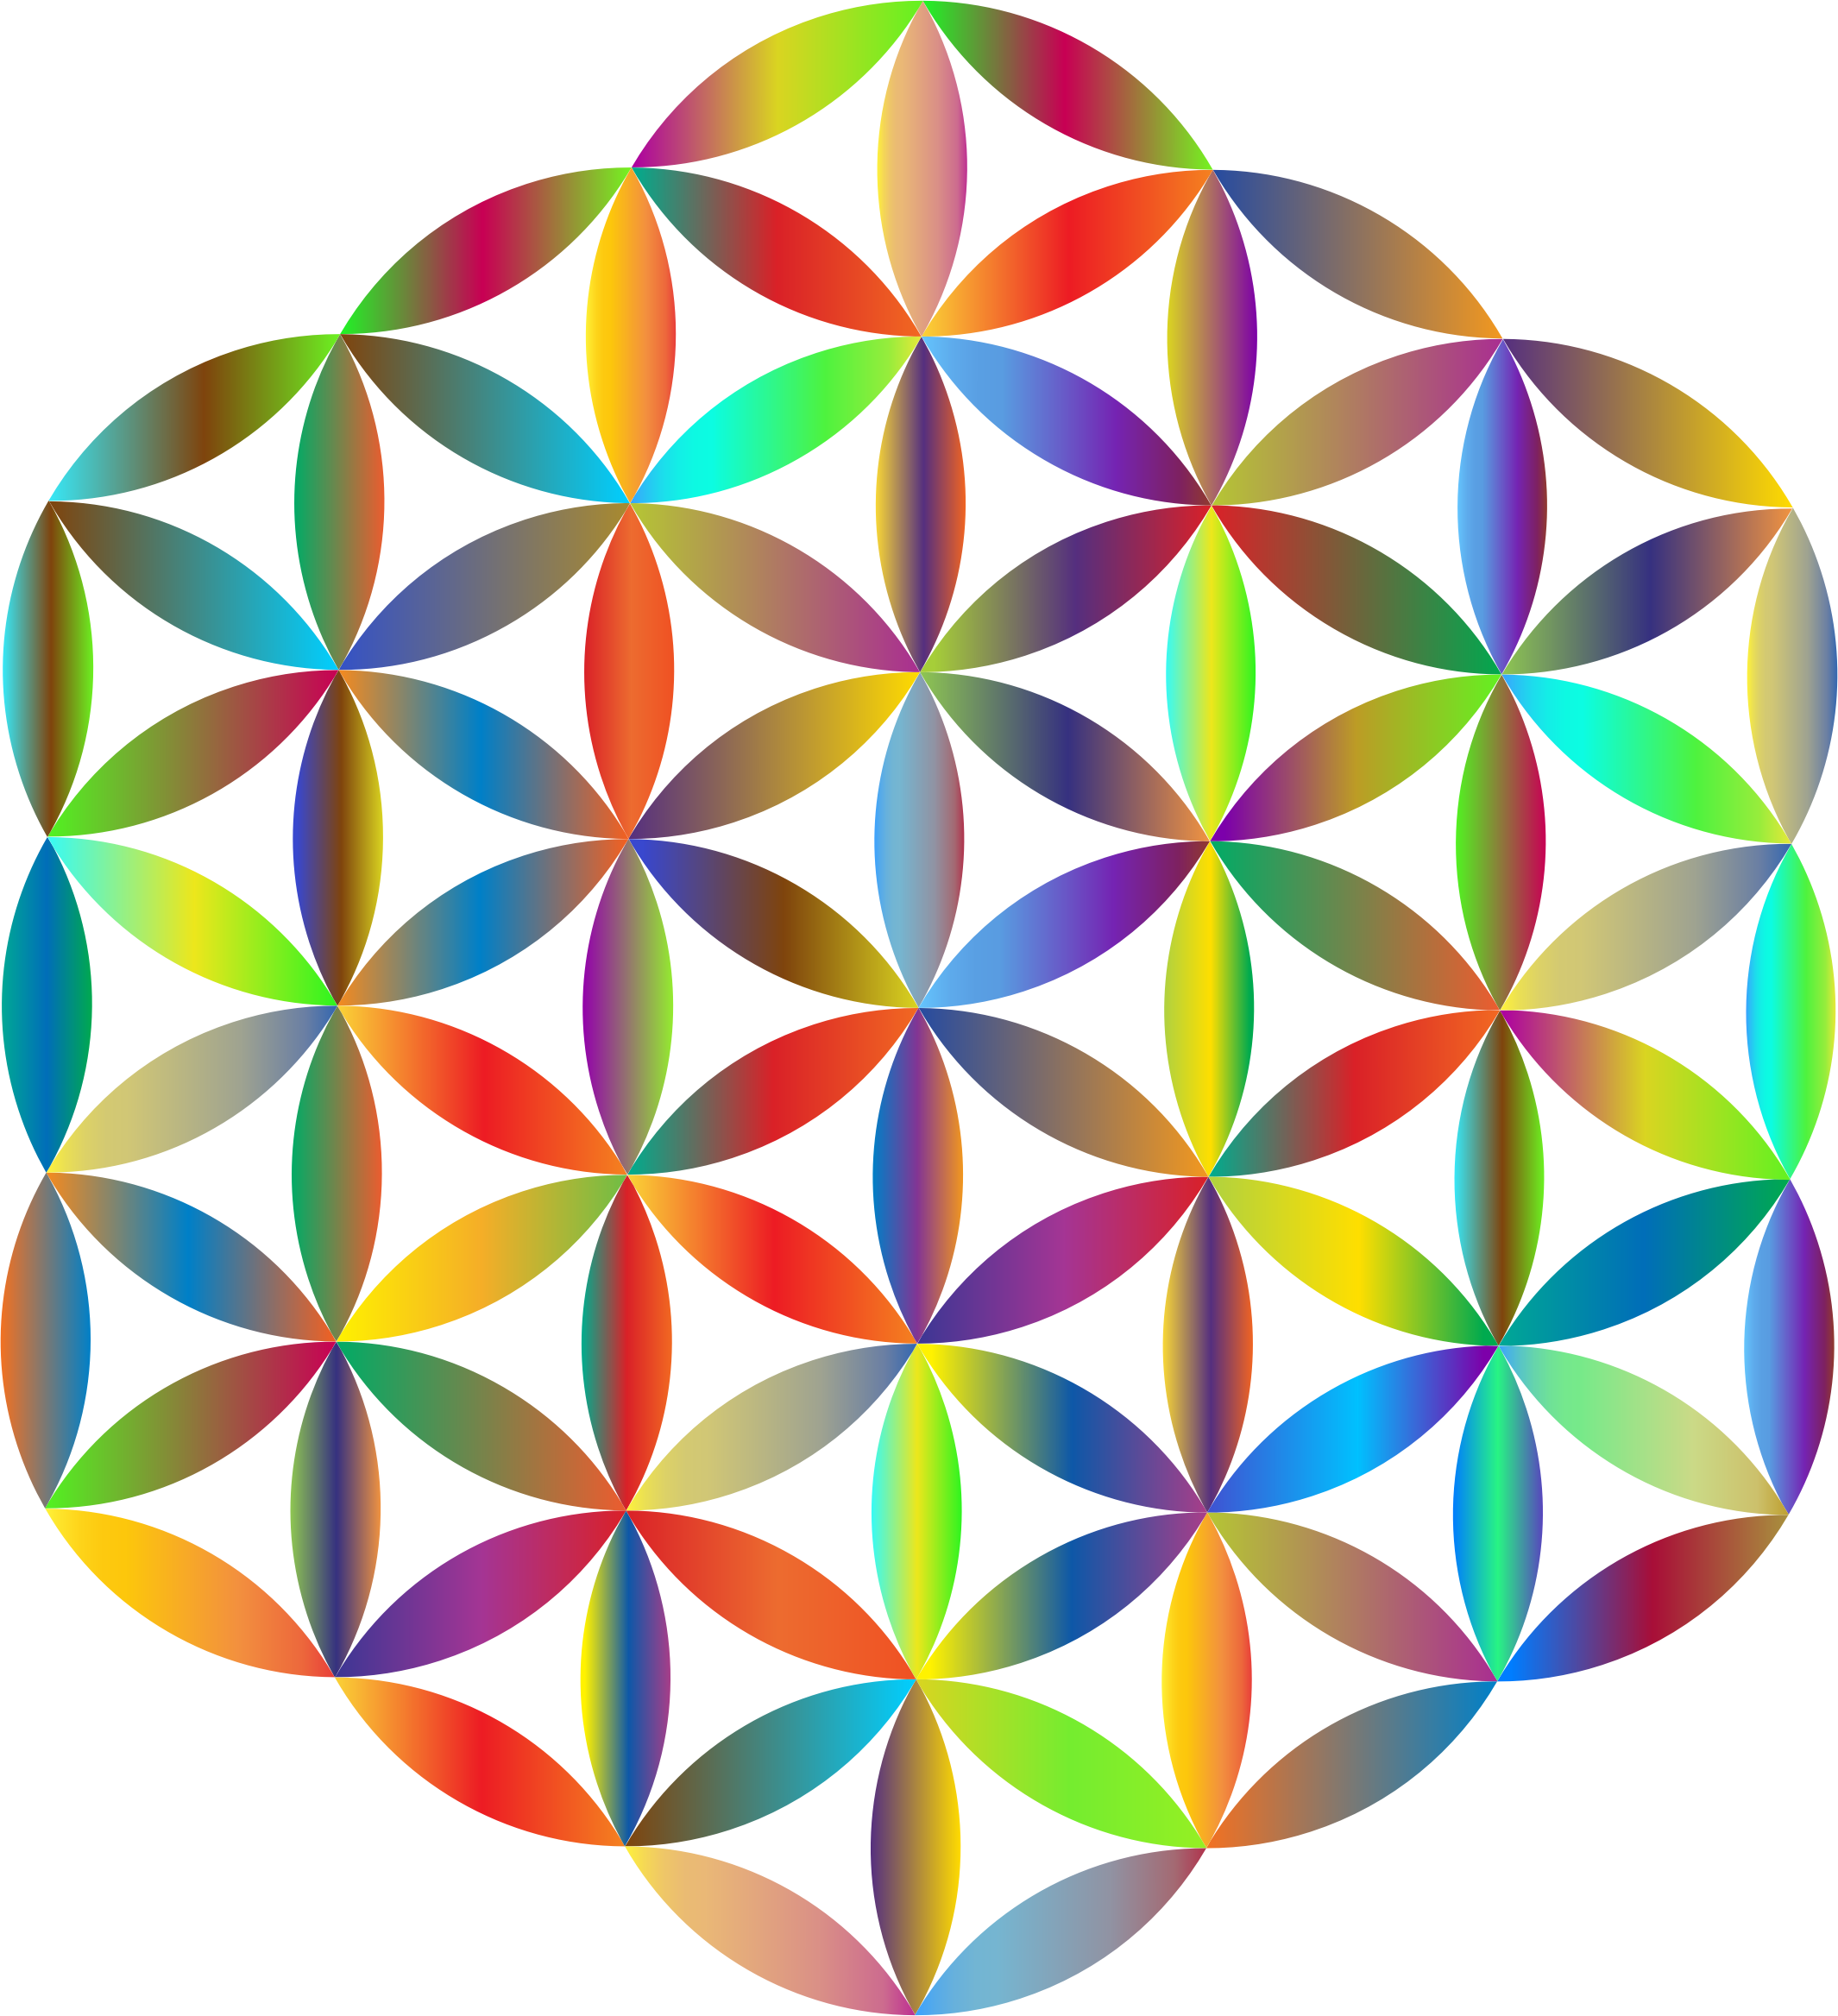 Prismatic Flower Of Life by GDJ